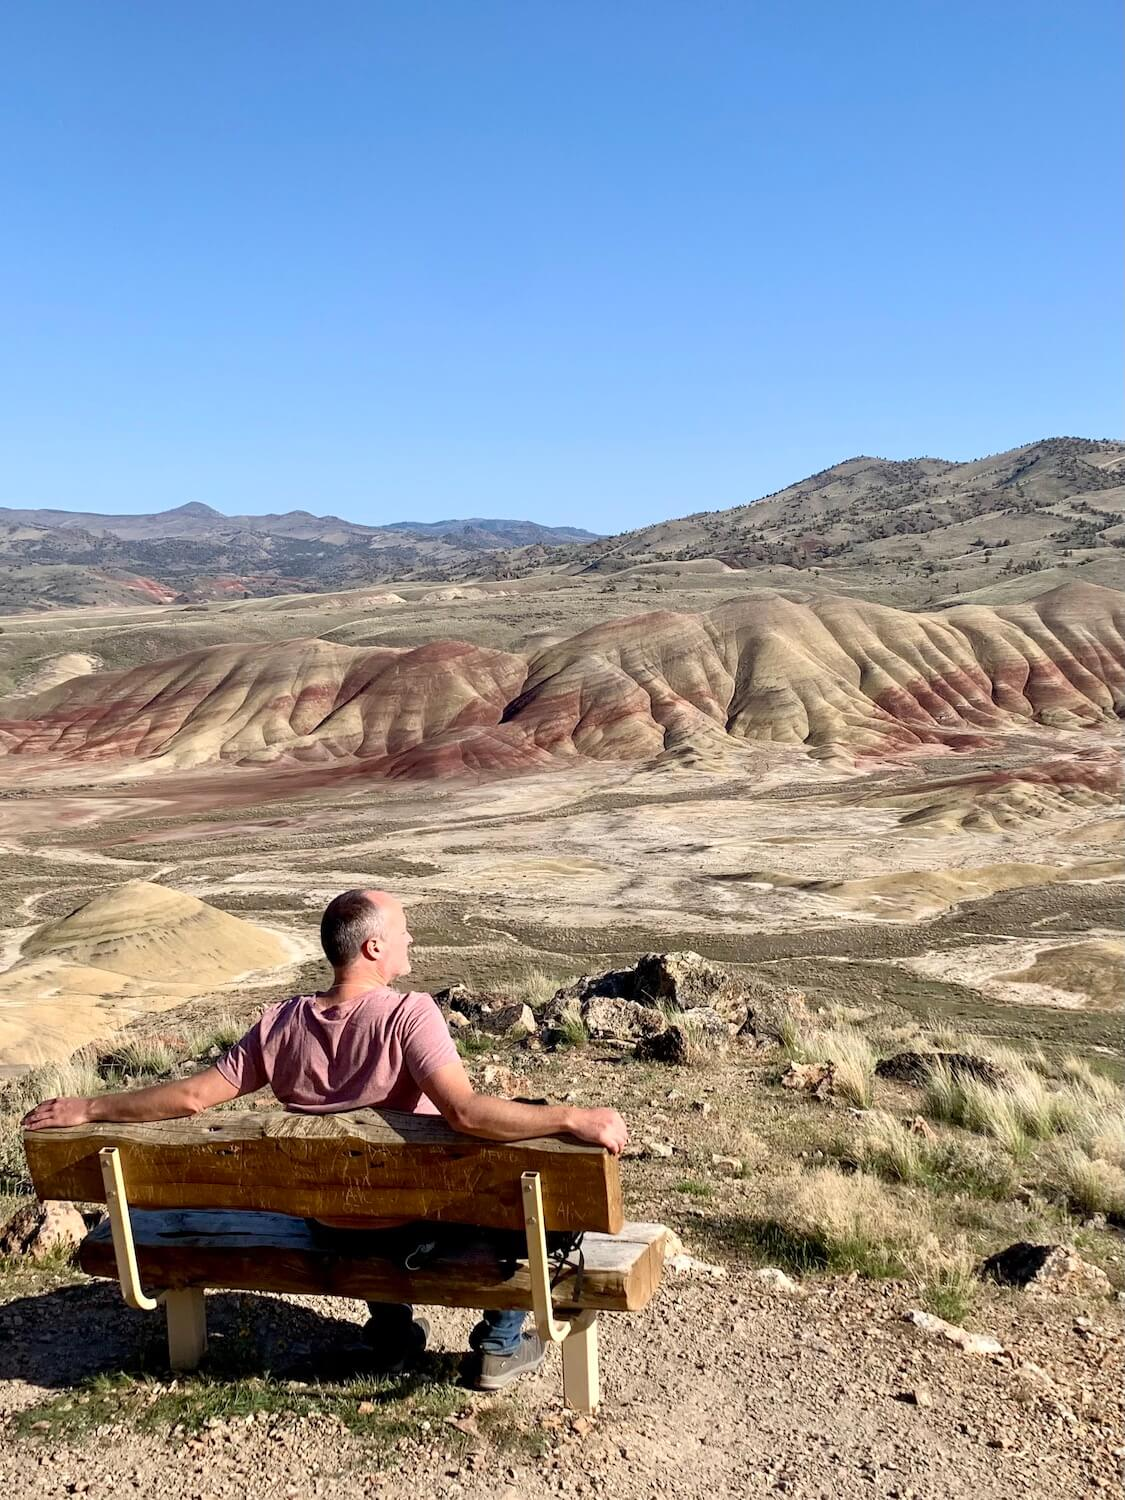 Matthew Kessi sits on a bench looking out toward the largest expanse of colored hills in the Painted Hills monument, which is part of the John Day Fossil Beds National Park.  He is wearing a purple t-shirt and appears to be resting while looking at the beautiful view in front of him.  The green rolling hills cascade toward a blue sky above the horizon.